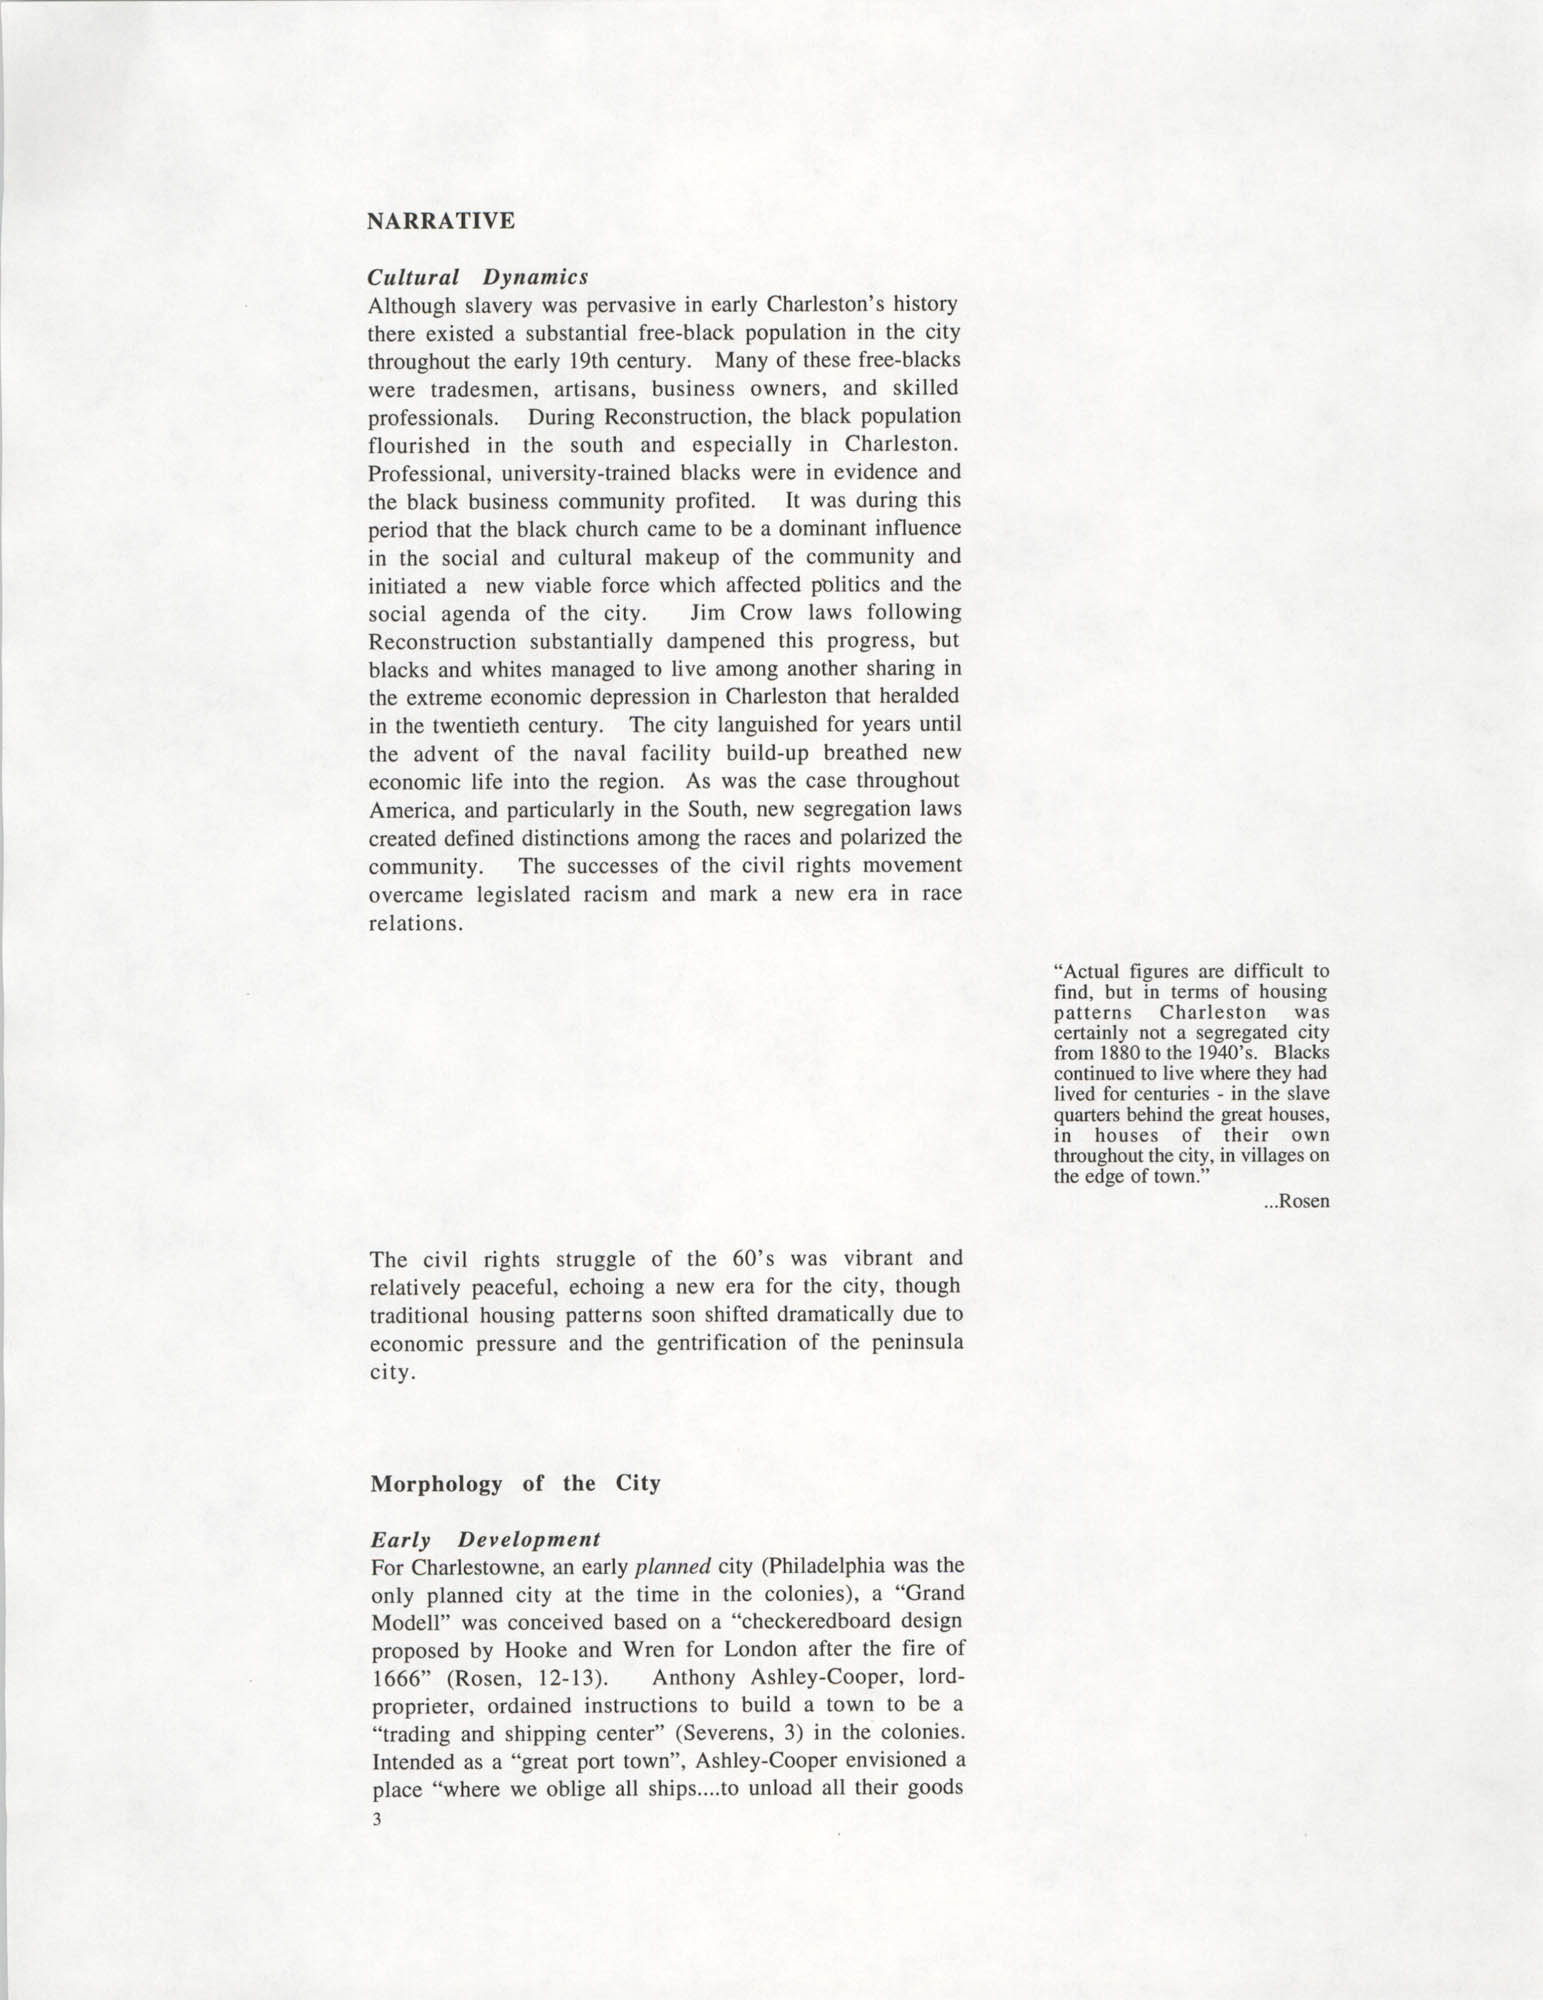 Academic Project Statement, Page 3